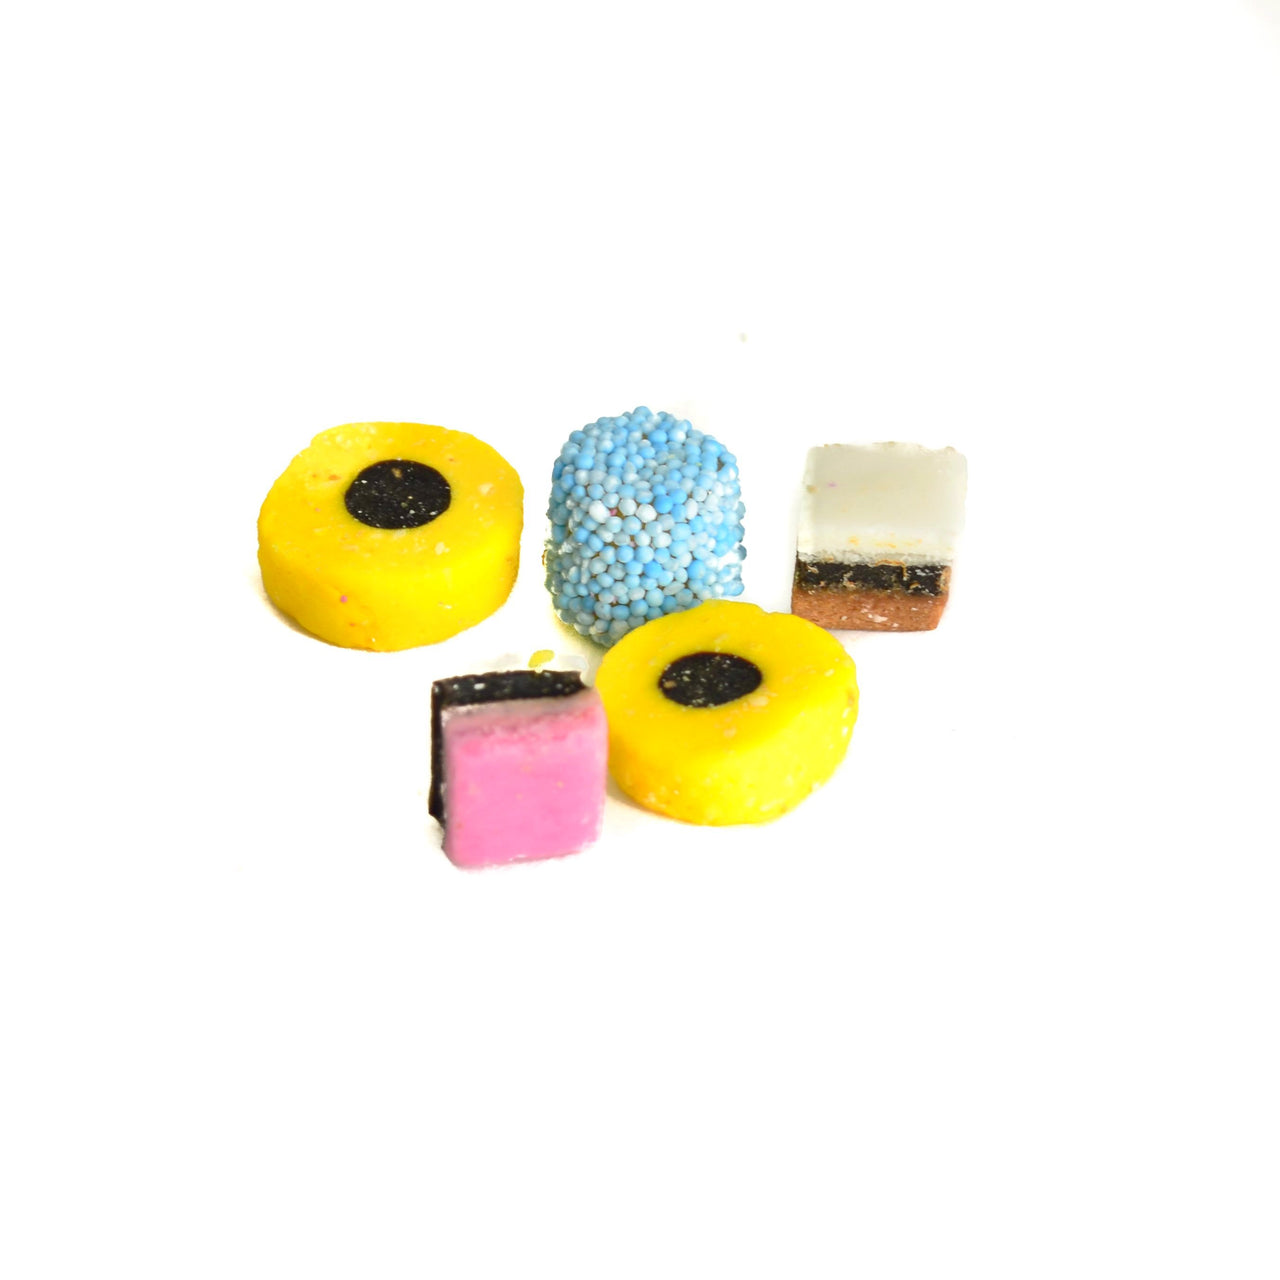 British Licorice Allsorts - Giddy Candy